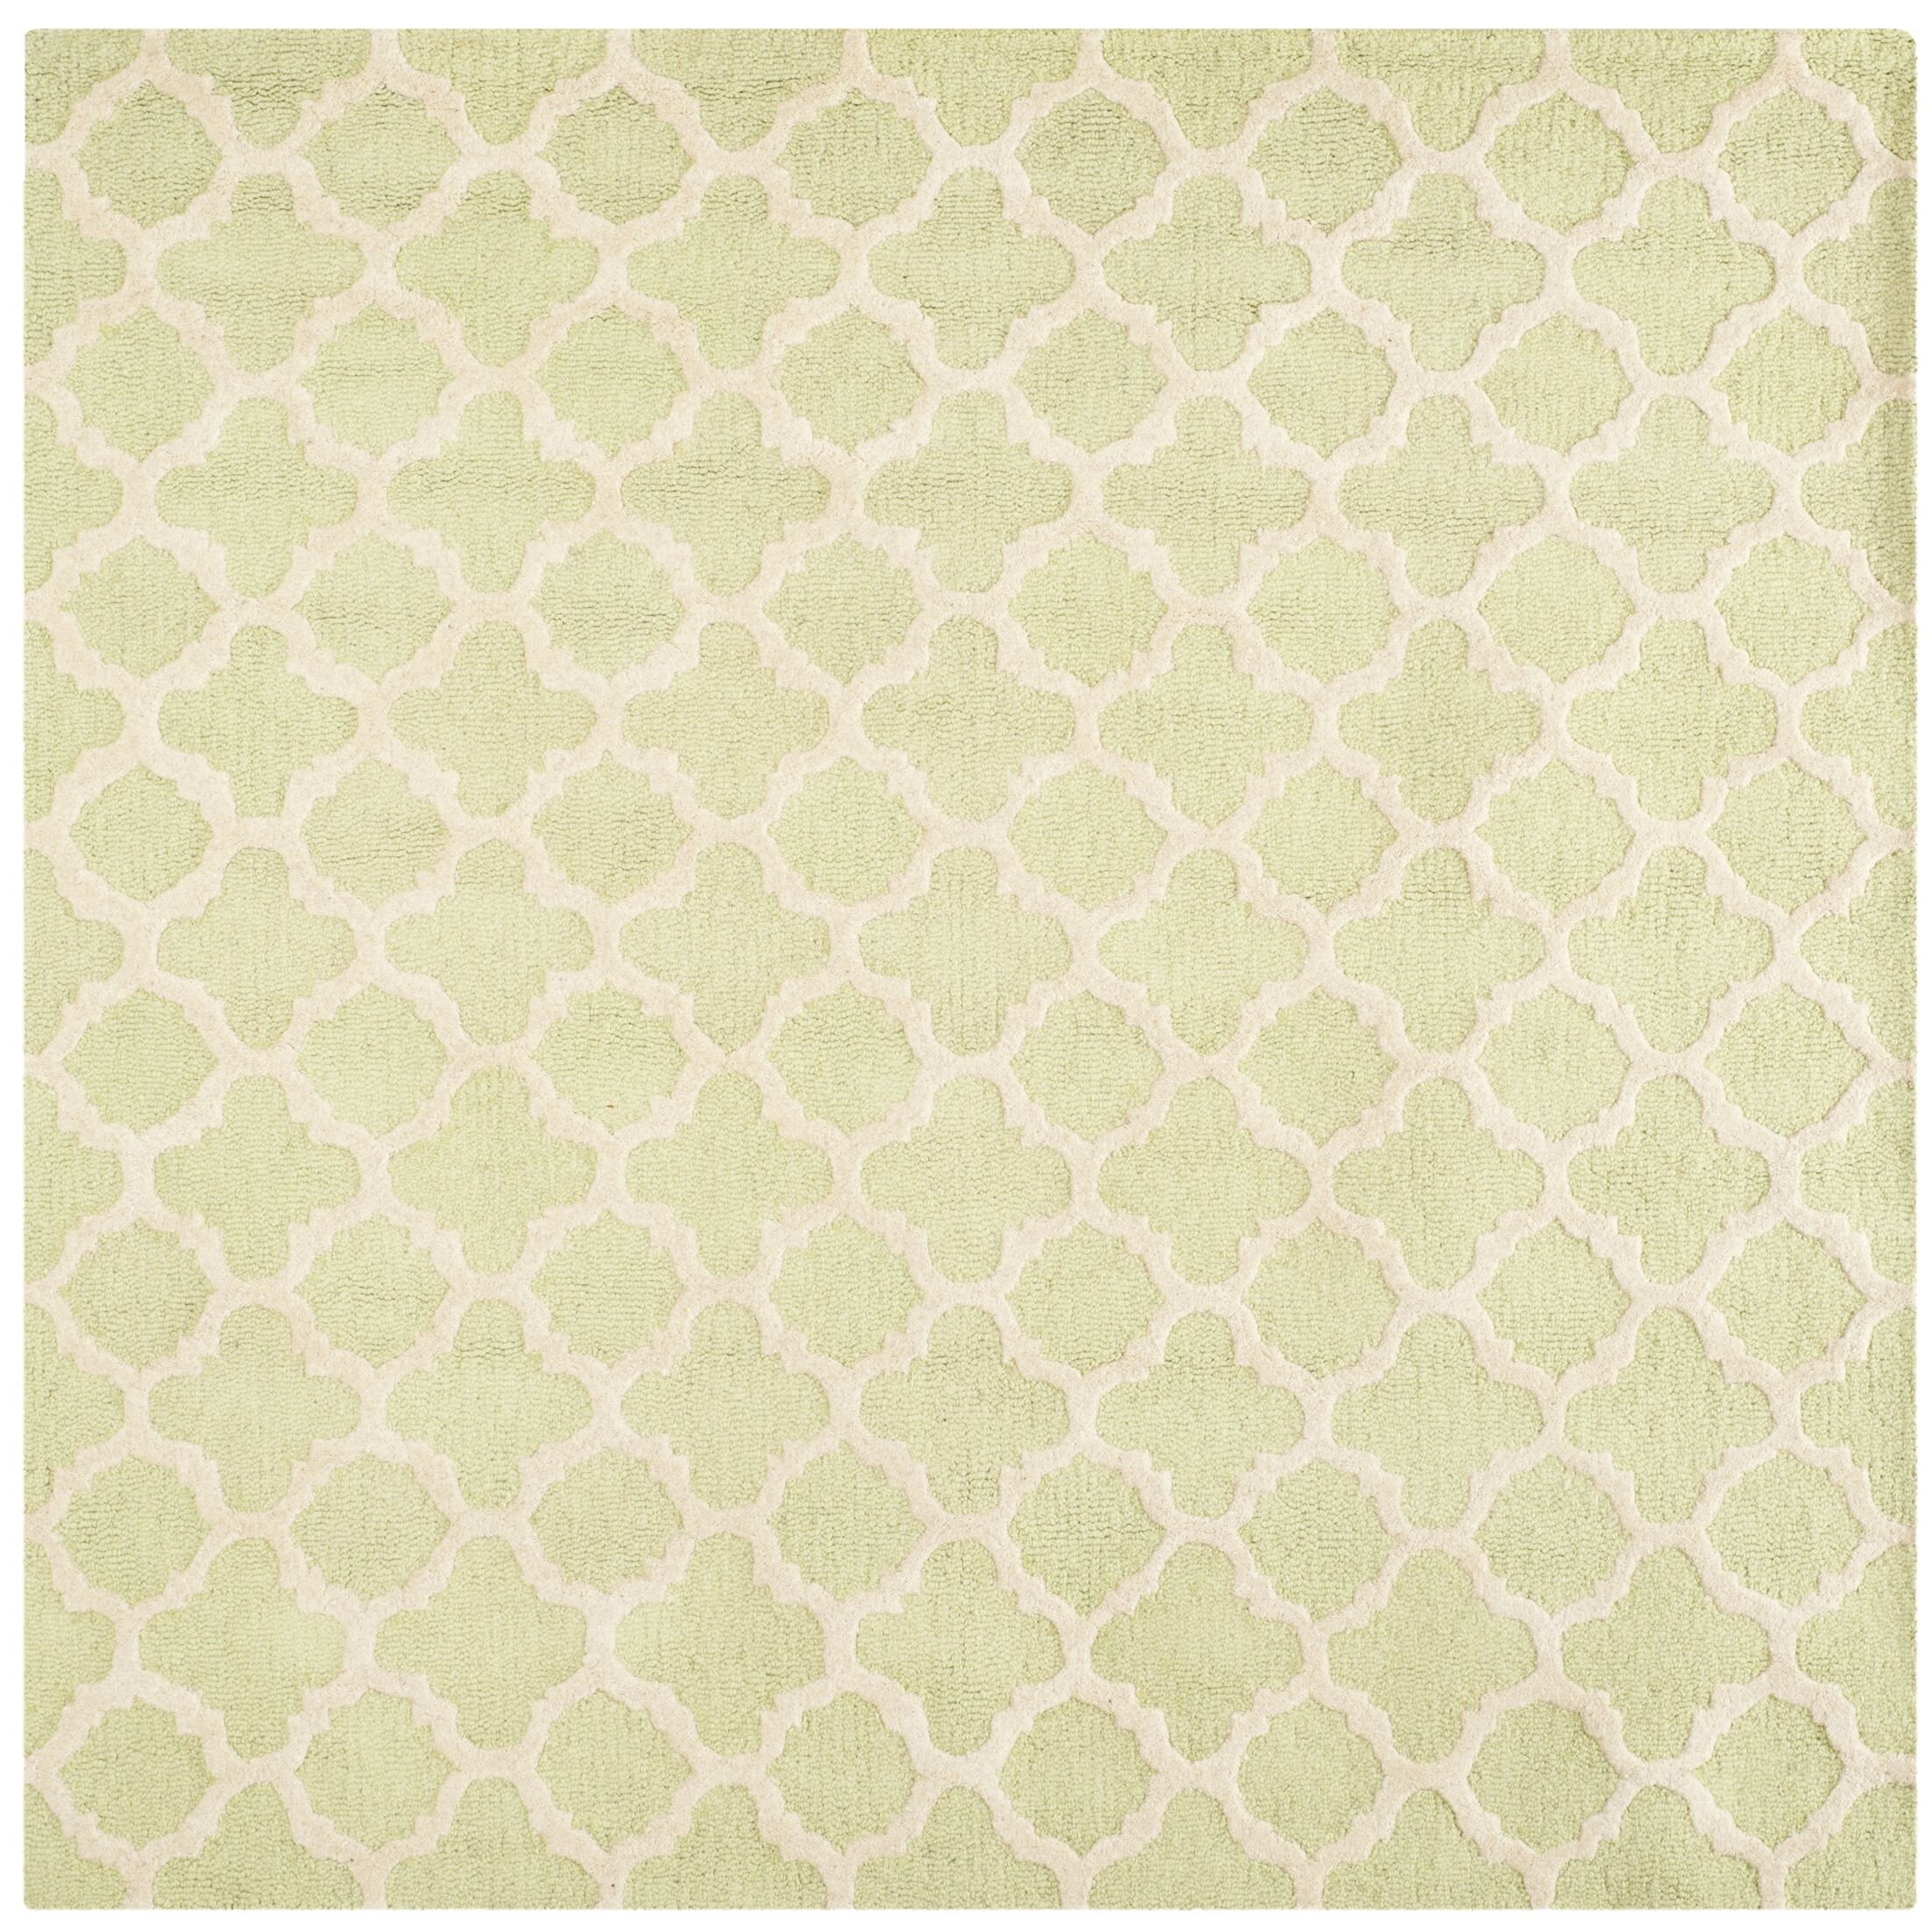 Martins Hand-Tufted Wool Light Green/Ivory Area Rug Rug Size: Square 8'